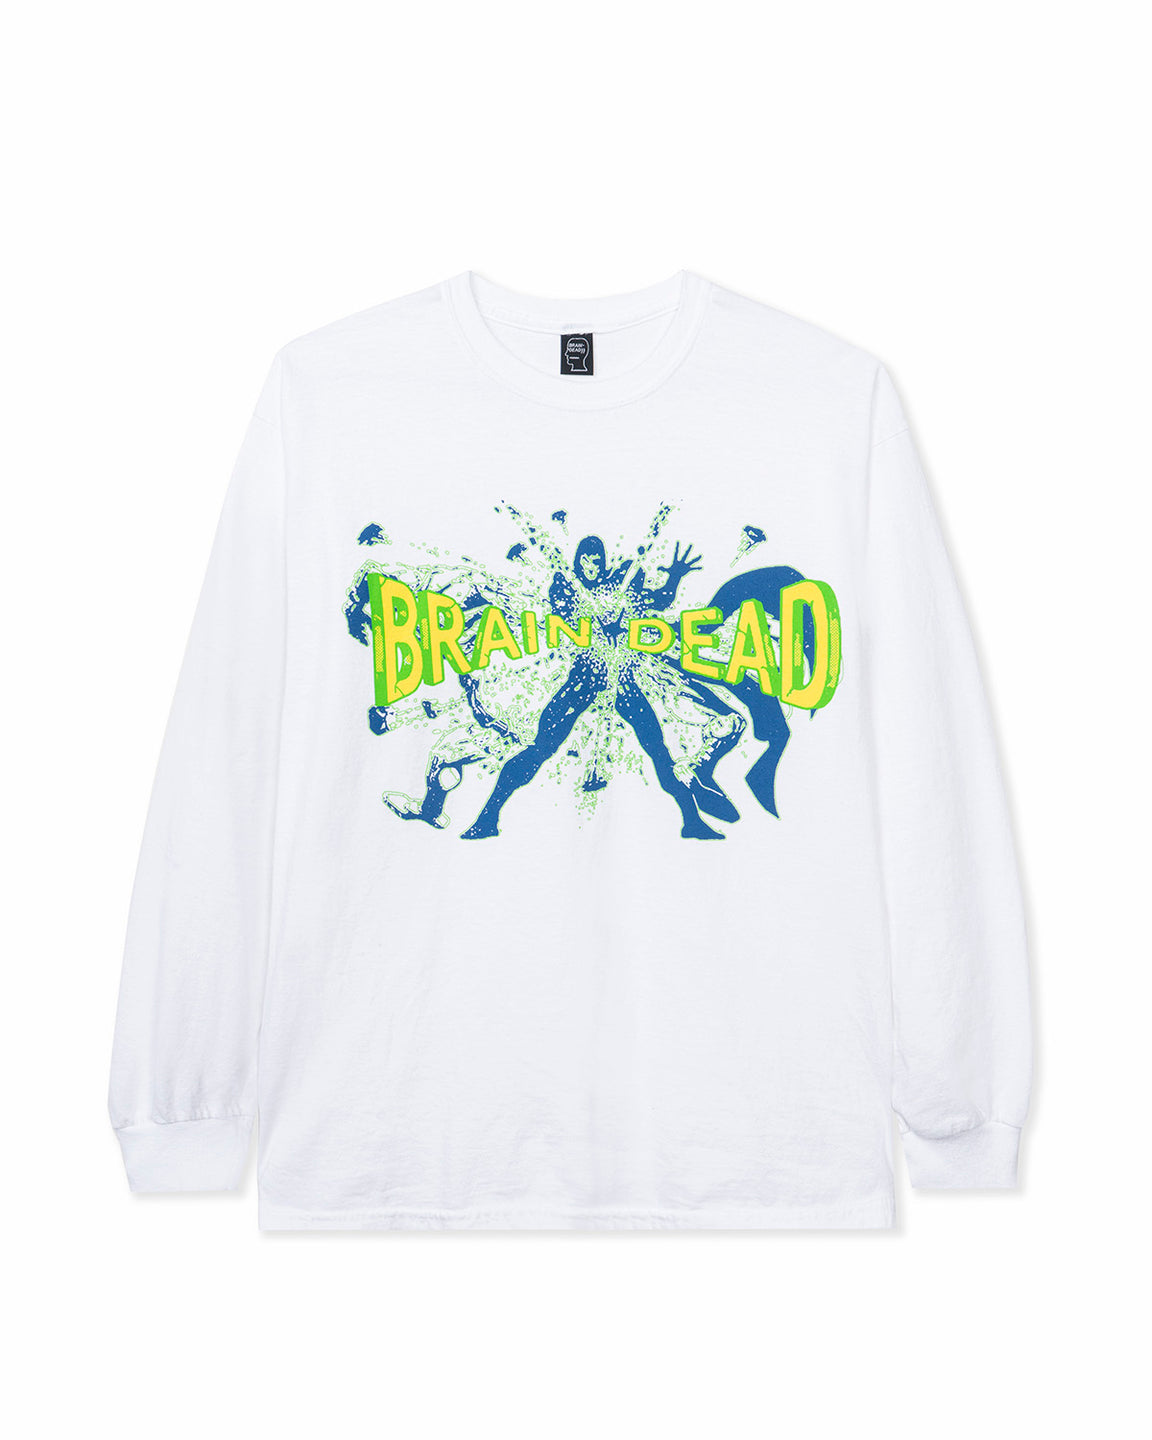 Blammin' Long Sleeve Tee - White